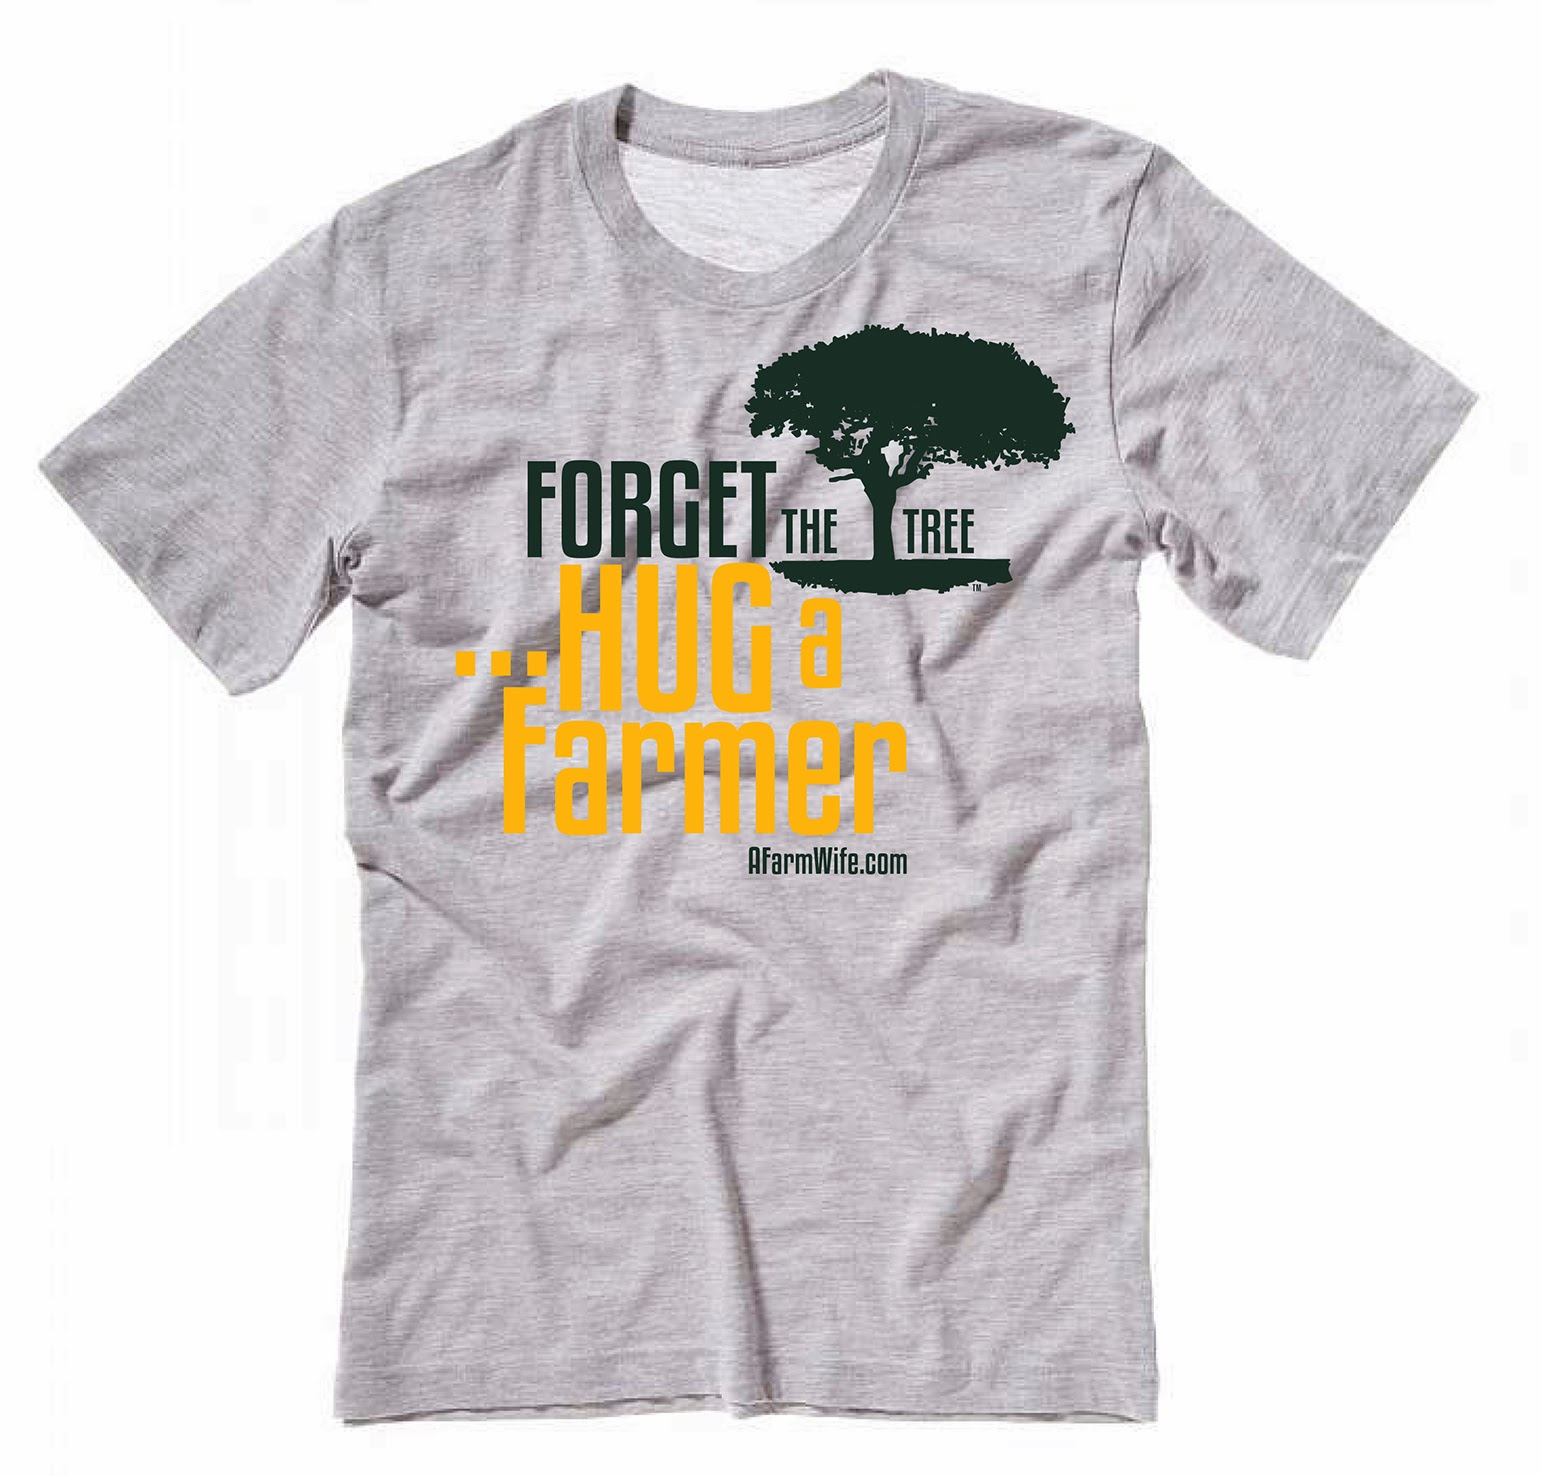 SPECIAL PRICE - Buy Forget the Tree . . .Hug a Farmer T-Shirt - While Supplies Last